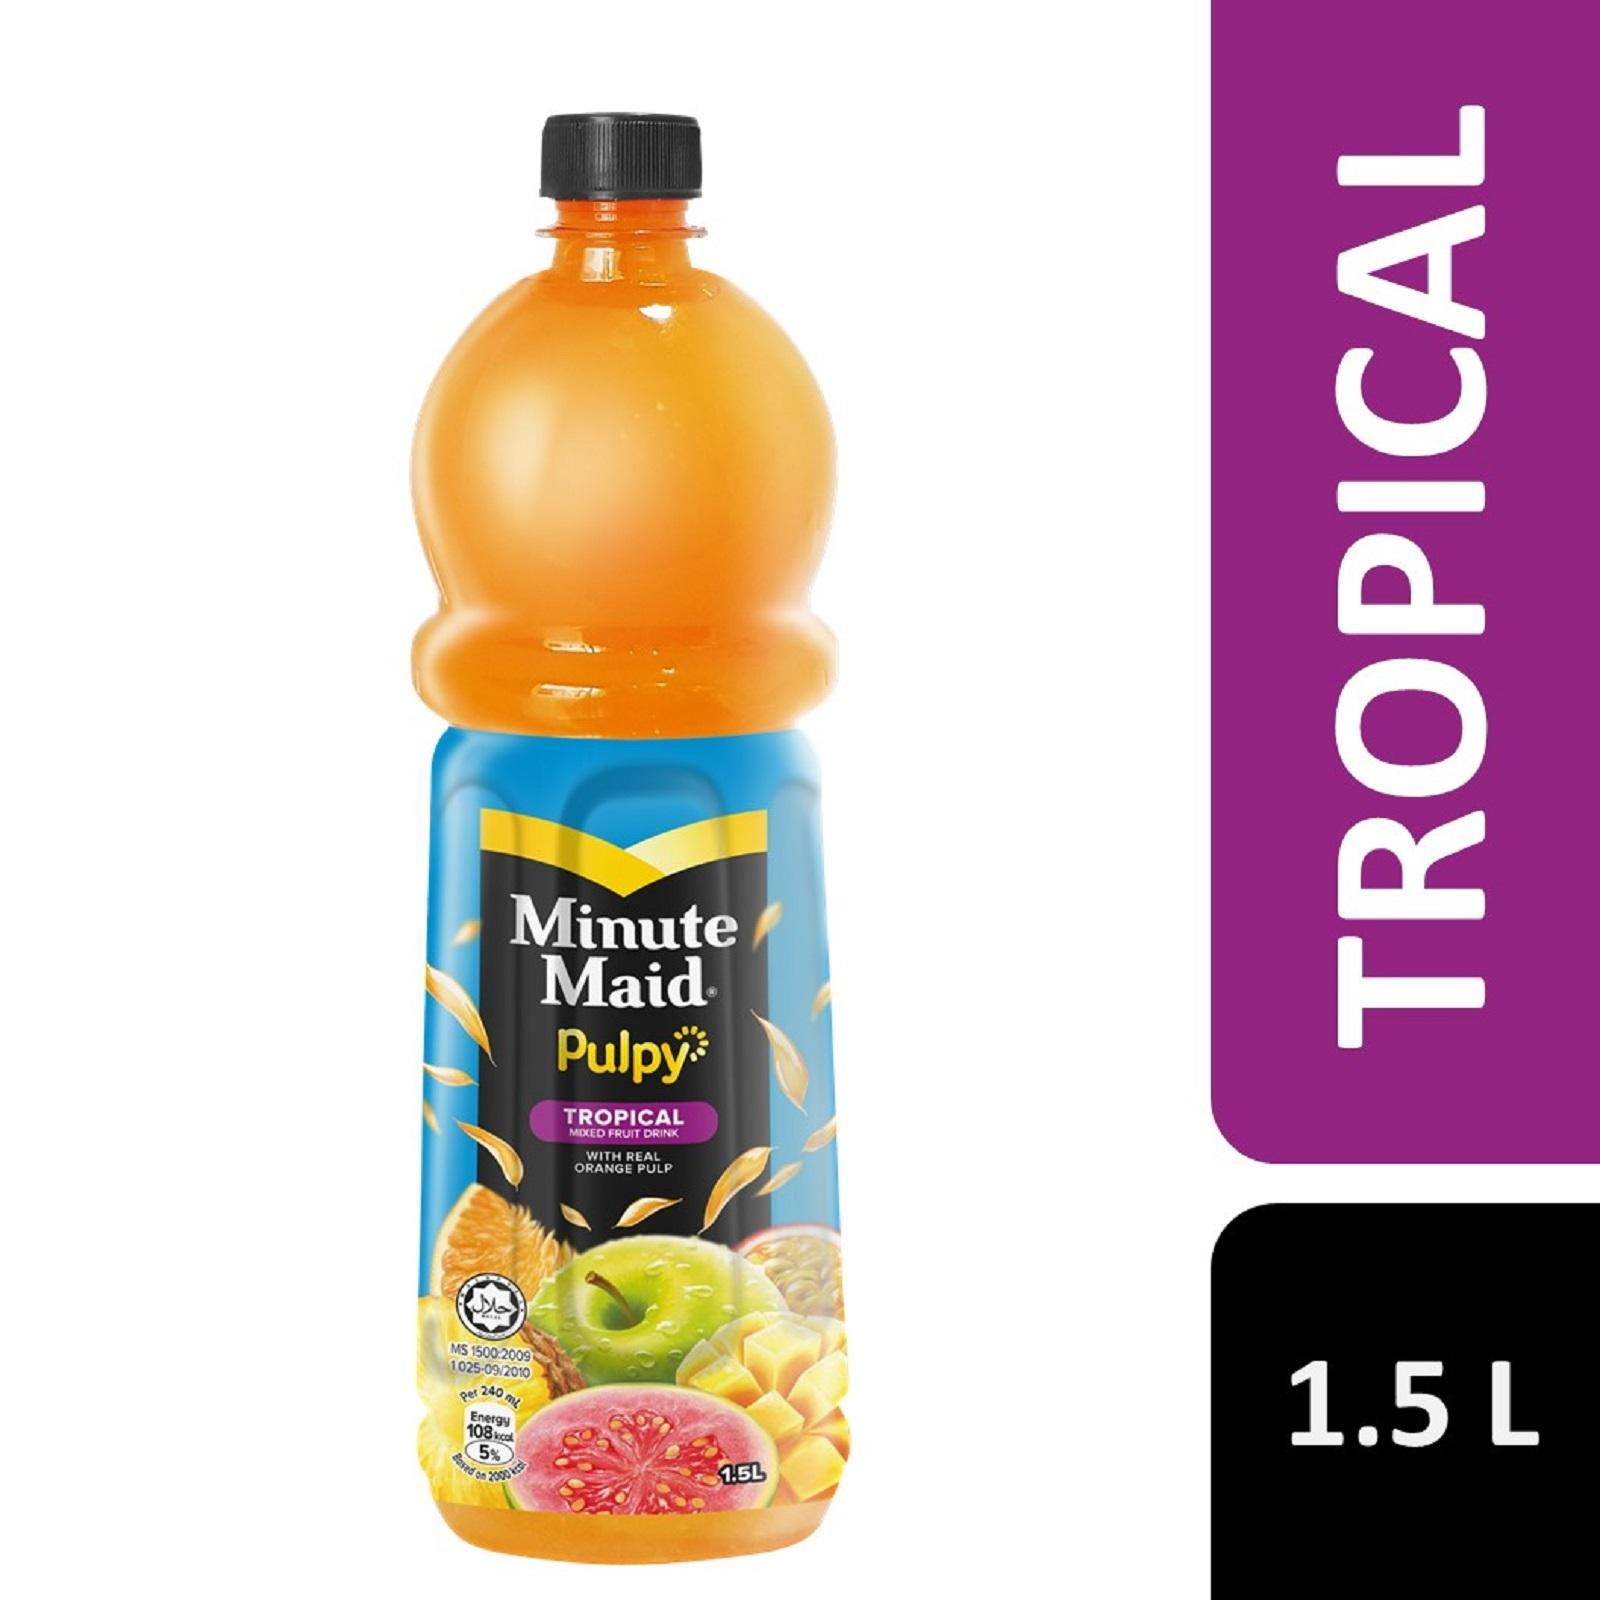 Minute Maid Pulpy Tropical Juice (1.5L)